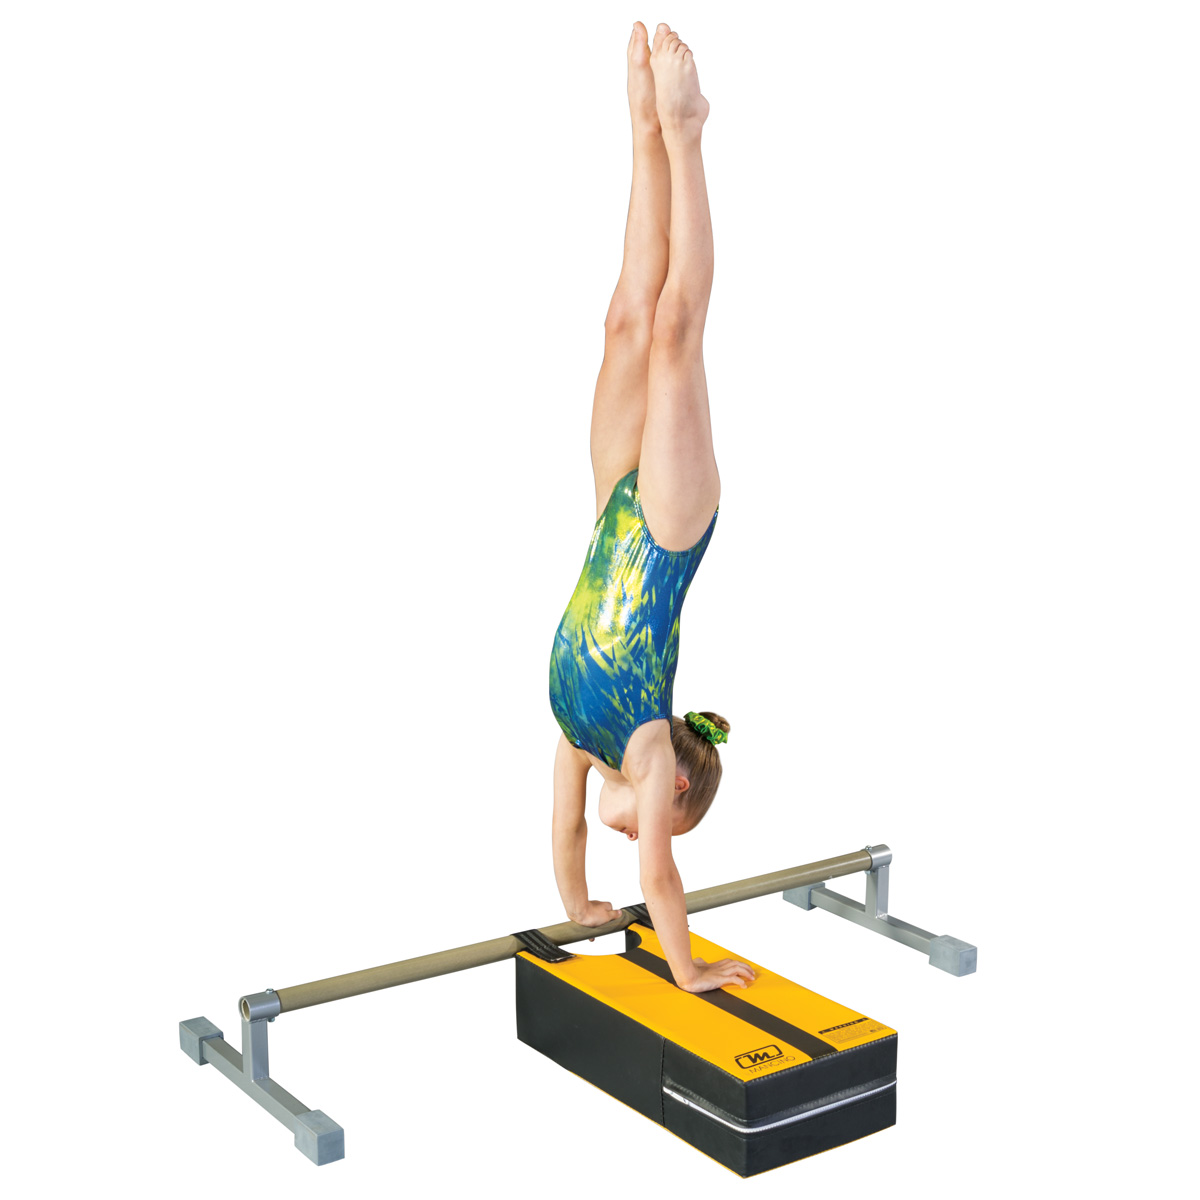 Pirouette Trainer Mat floor bar and gymnast - mancino mats